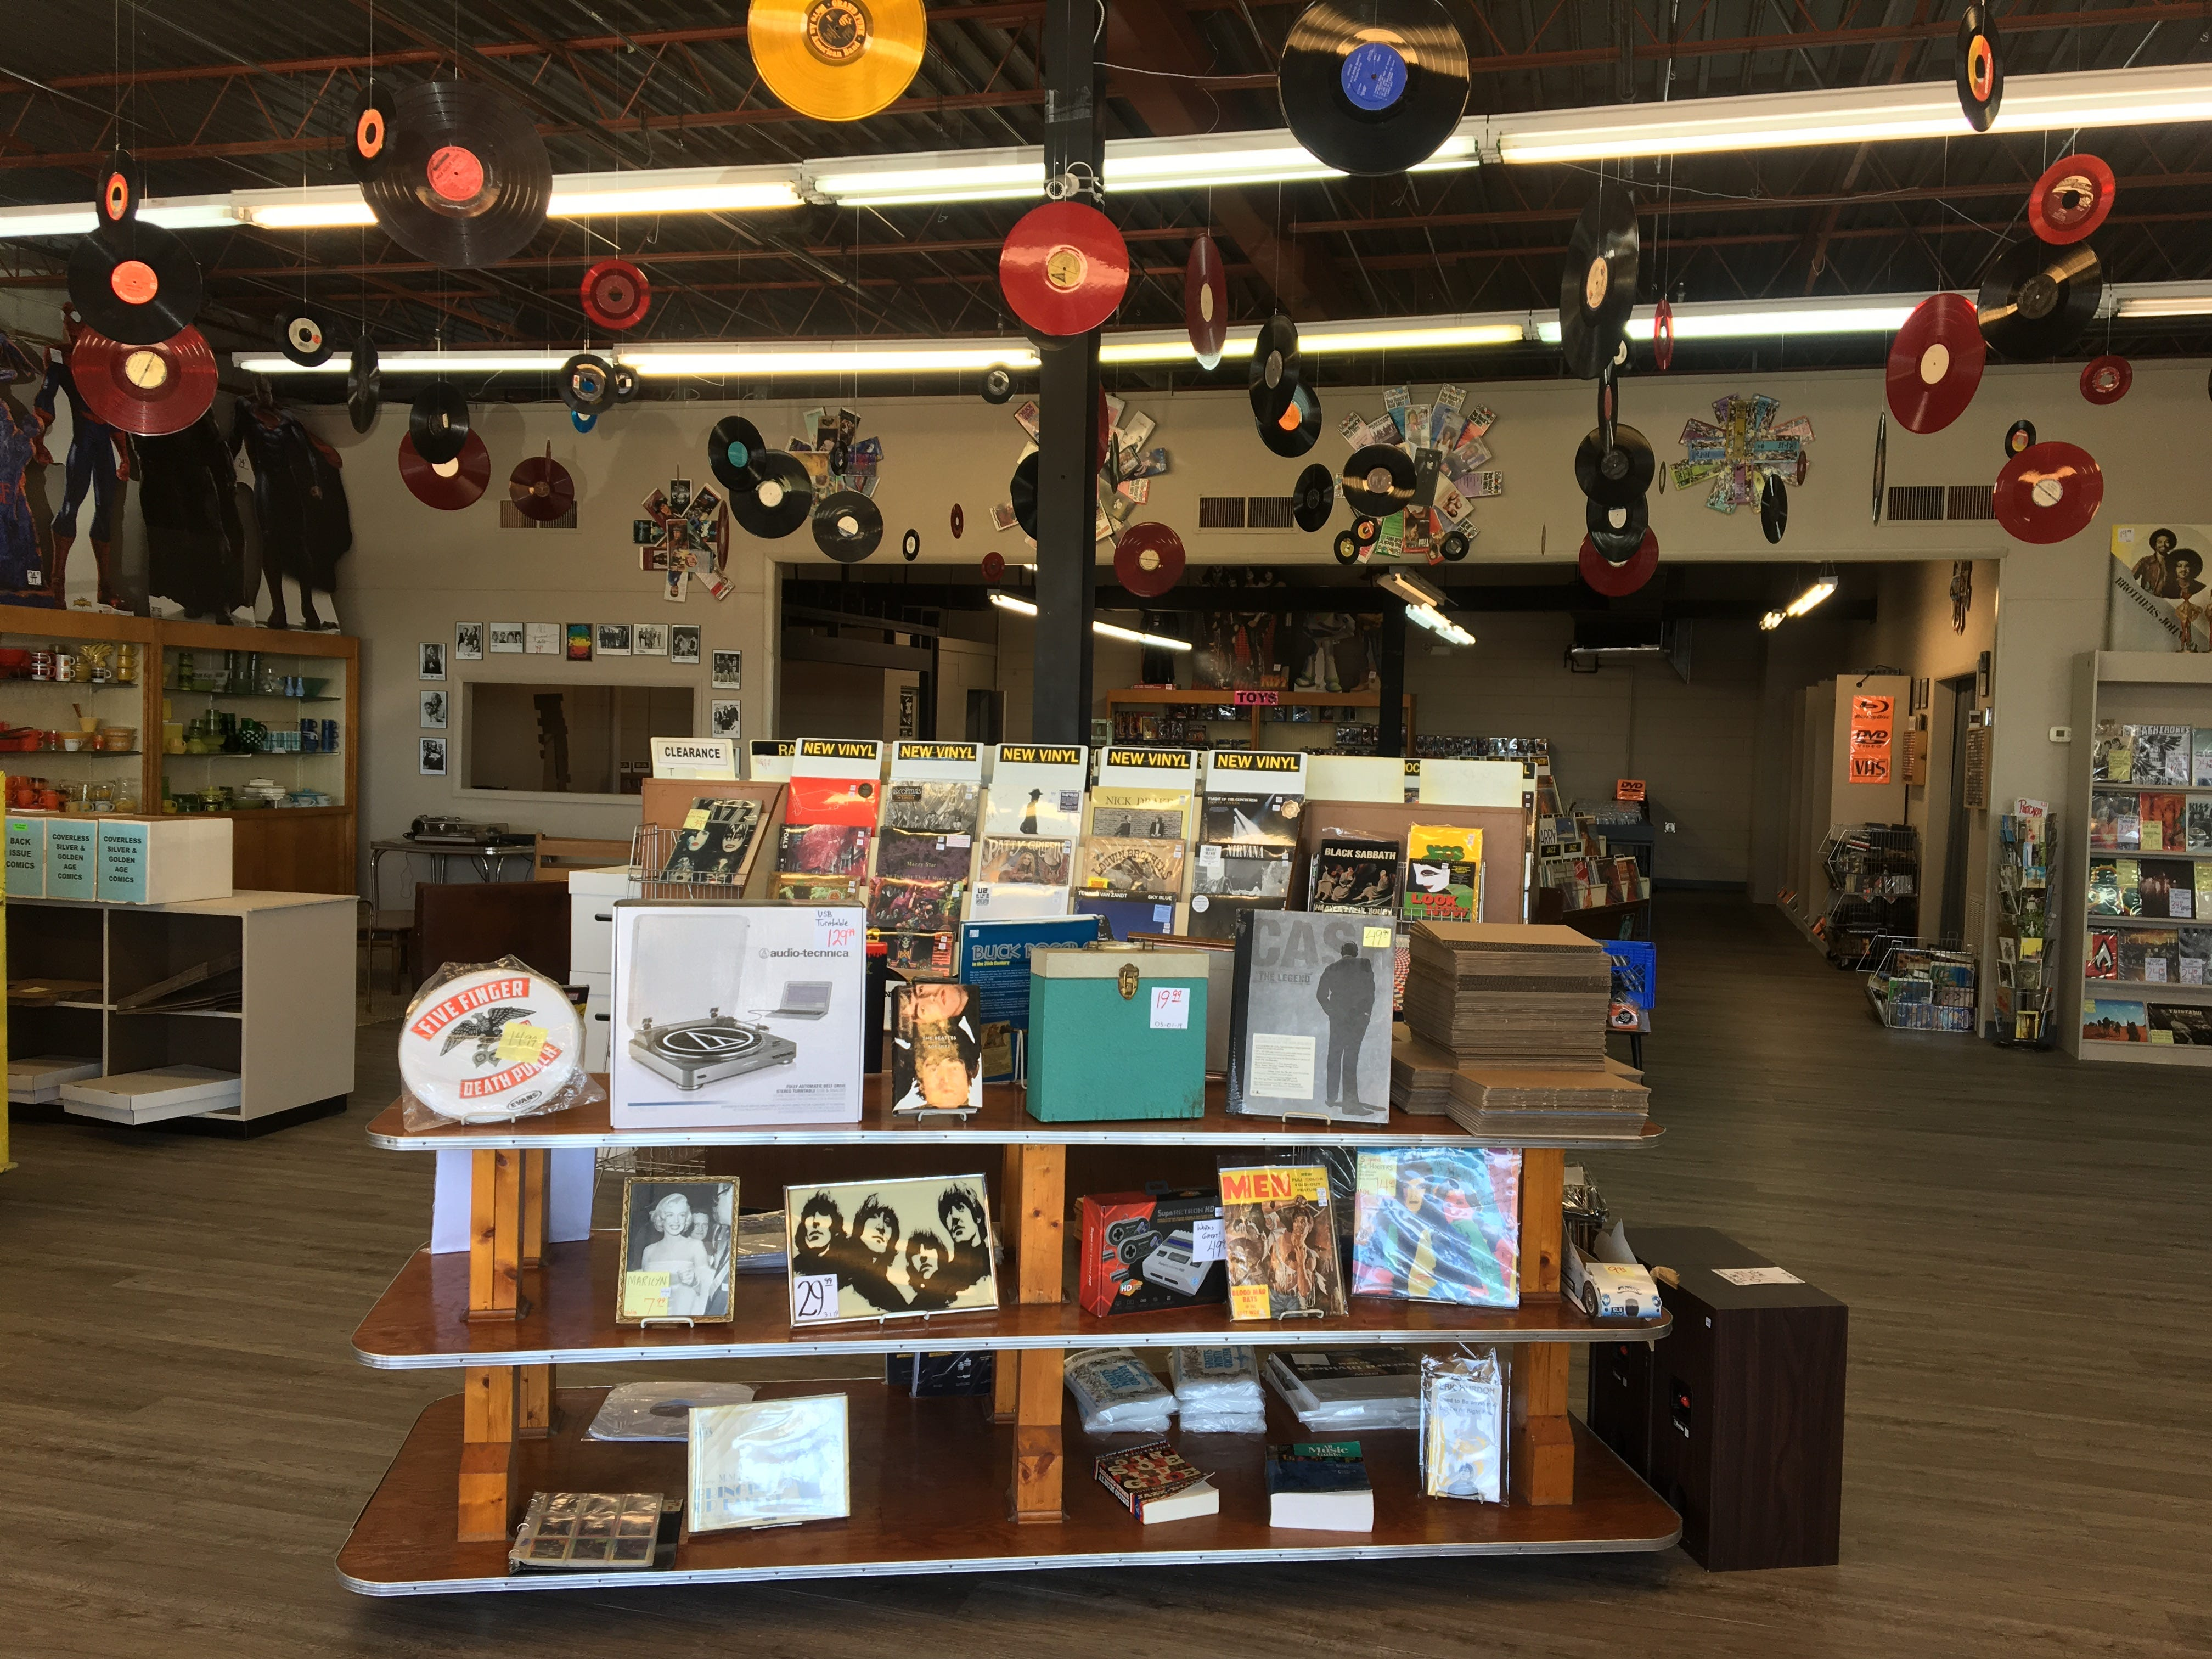 The Great Escape, at 810 N.W. Broad St. in Murfreesboro, is a media store that buys and sells used, new, collectible and out-of-print vinyl records, DVDs, comic books, games, CDs and other items.